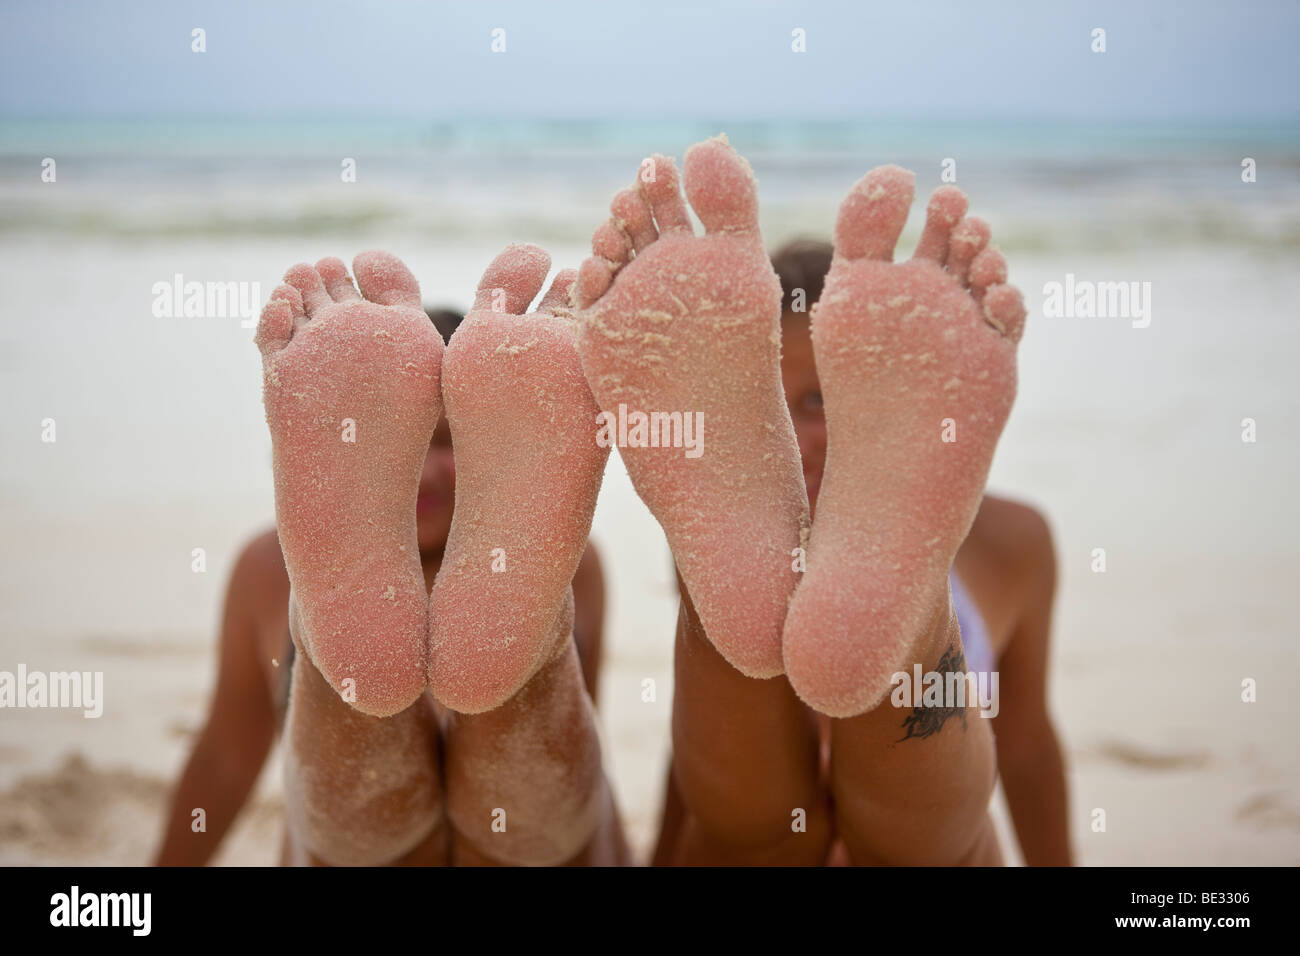 image Female feet 30 year old woman